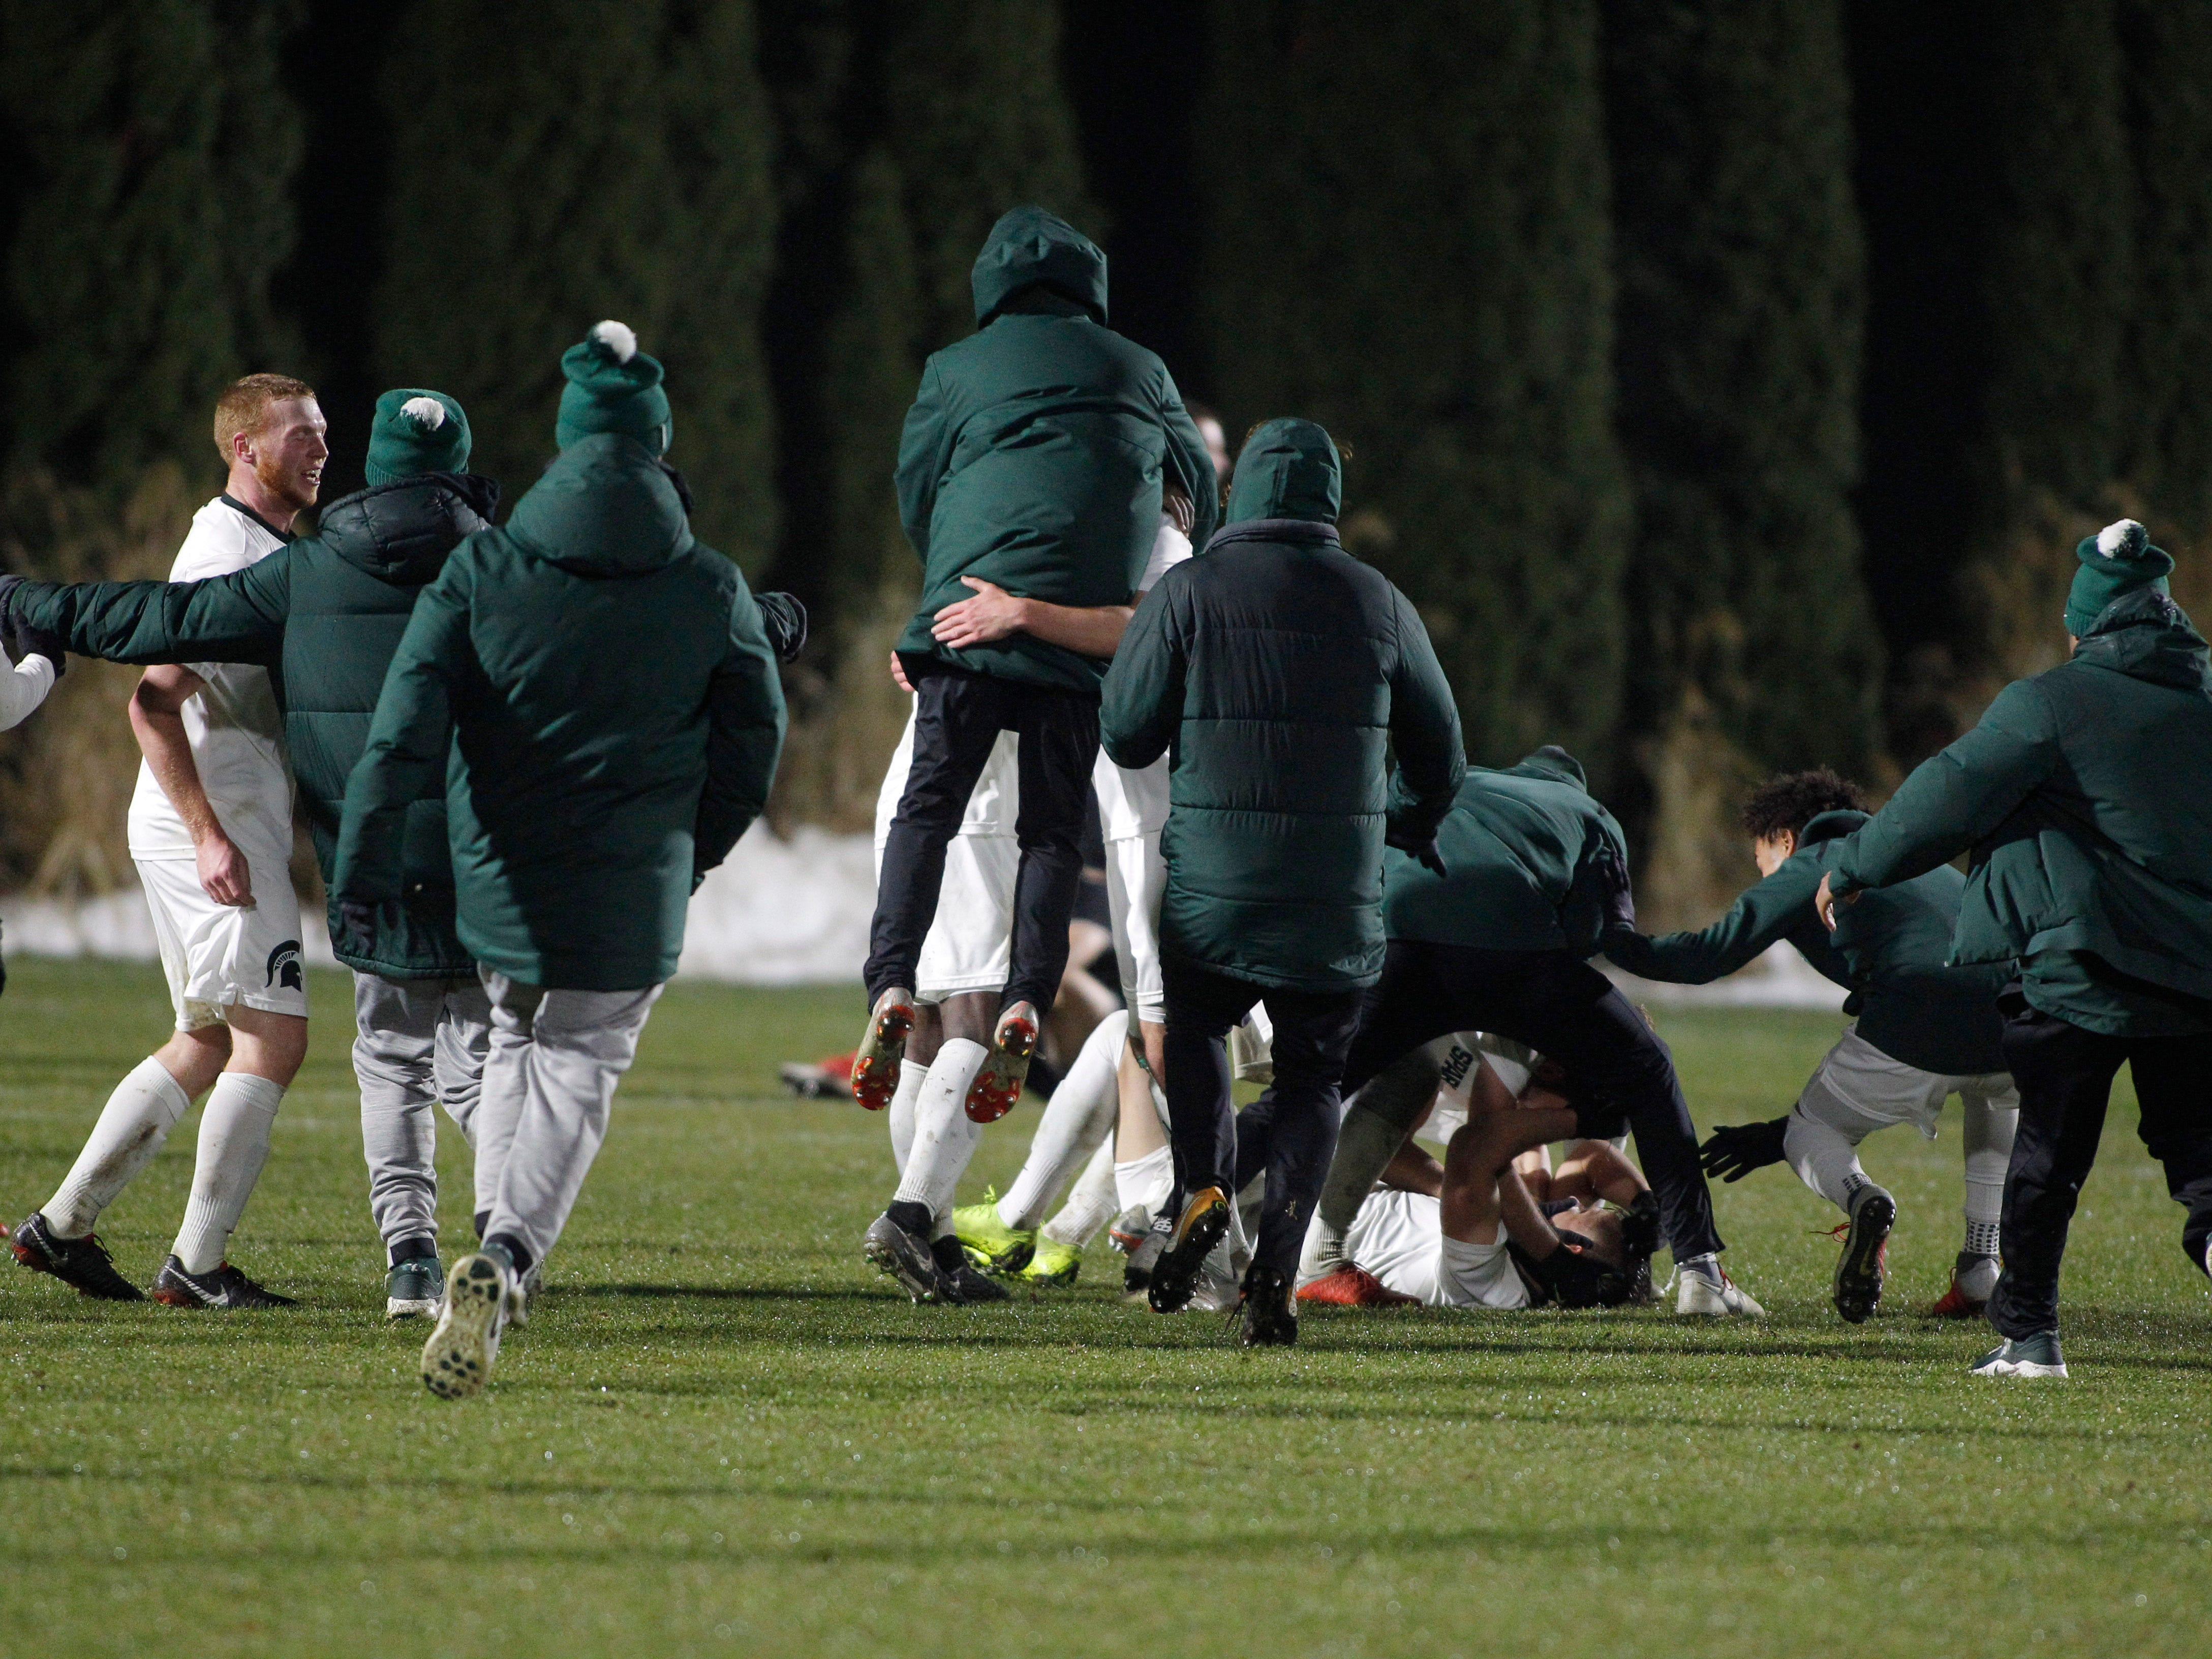 Michigan State players celebrate around Ryan Sierakowski, bottom, after defeating James Madison 2-1, Saturday, Dec. 1, 2018, in East Lansing, Mich.